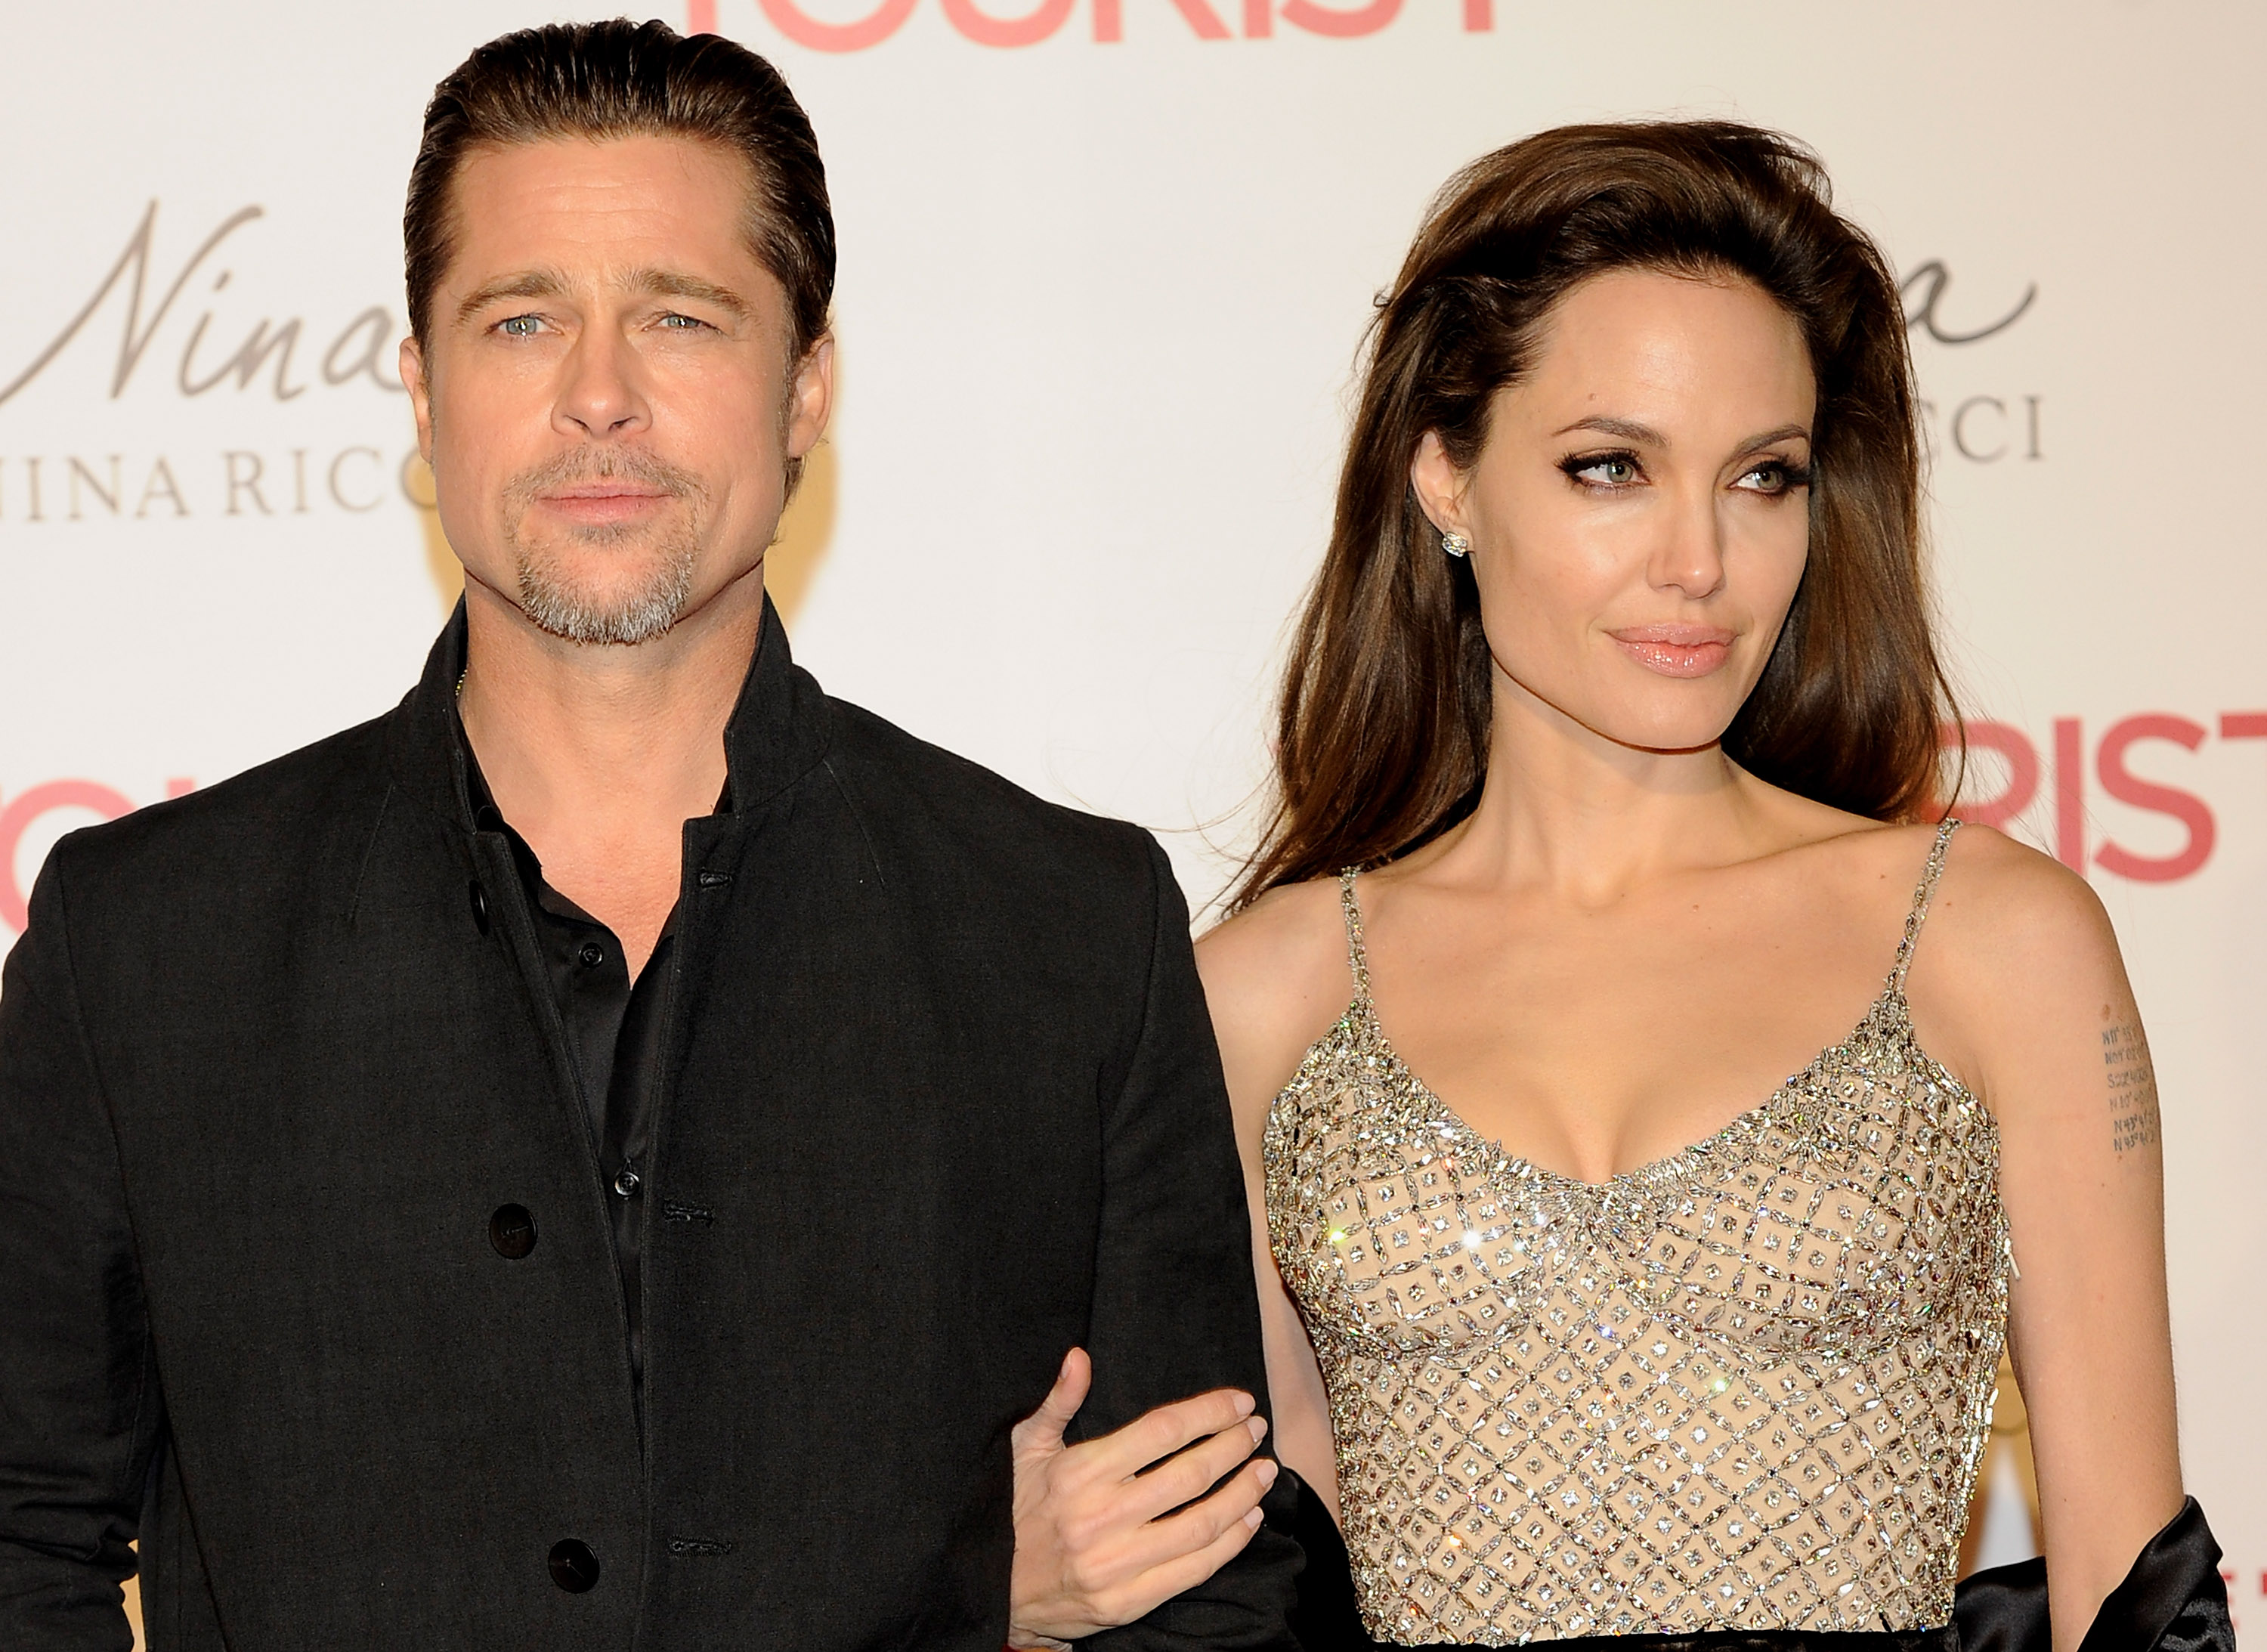 Angelina Jolie and Johnny Depp Attend 'The Tourist' Madrid Premiere